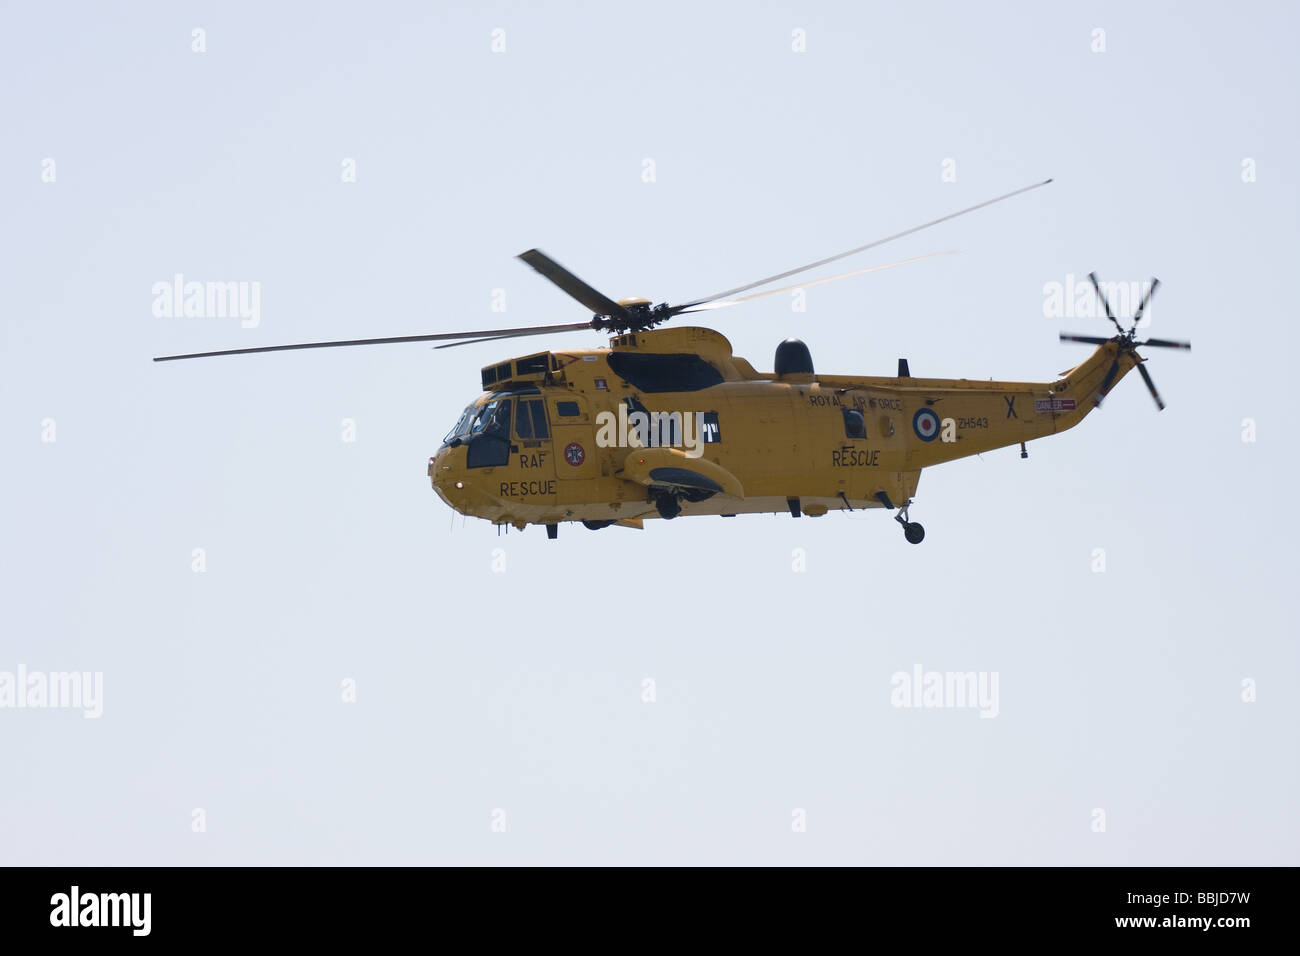 raf yellow search and rescue helicopter flying blades southend airshow england uk europe - Stock Image